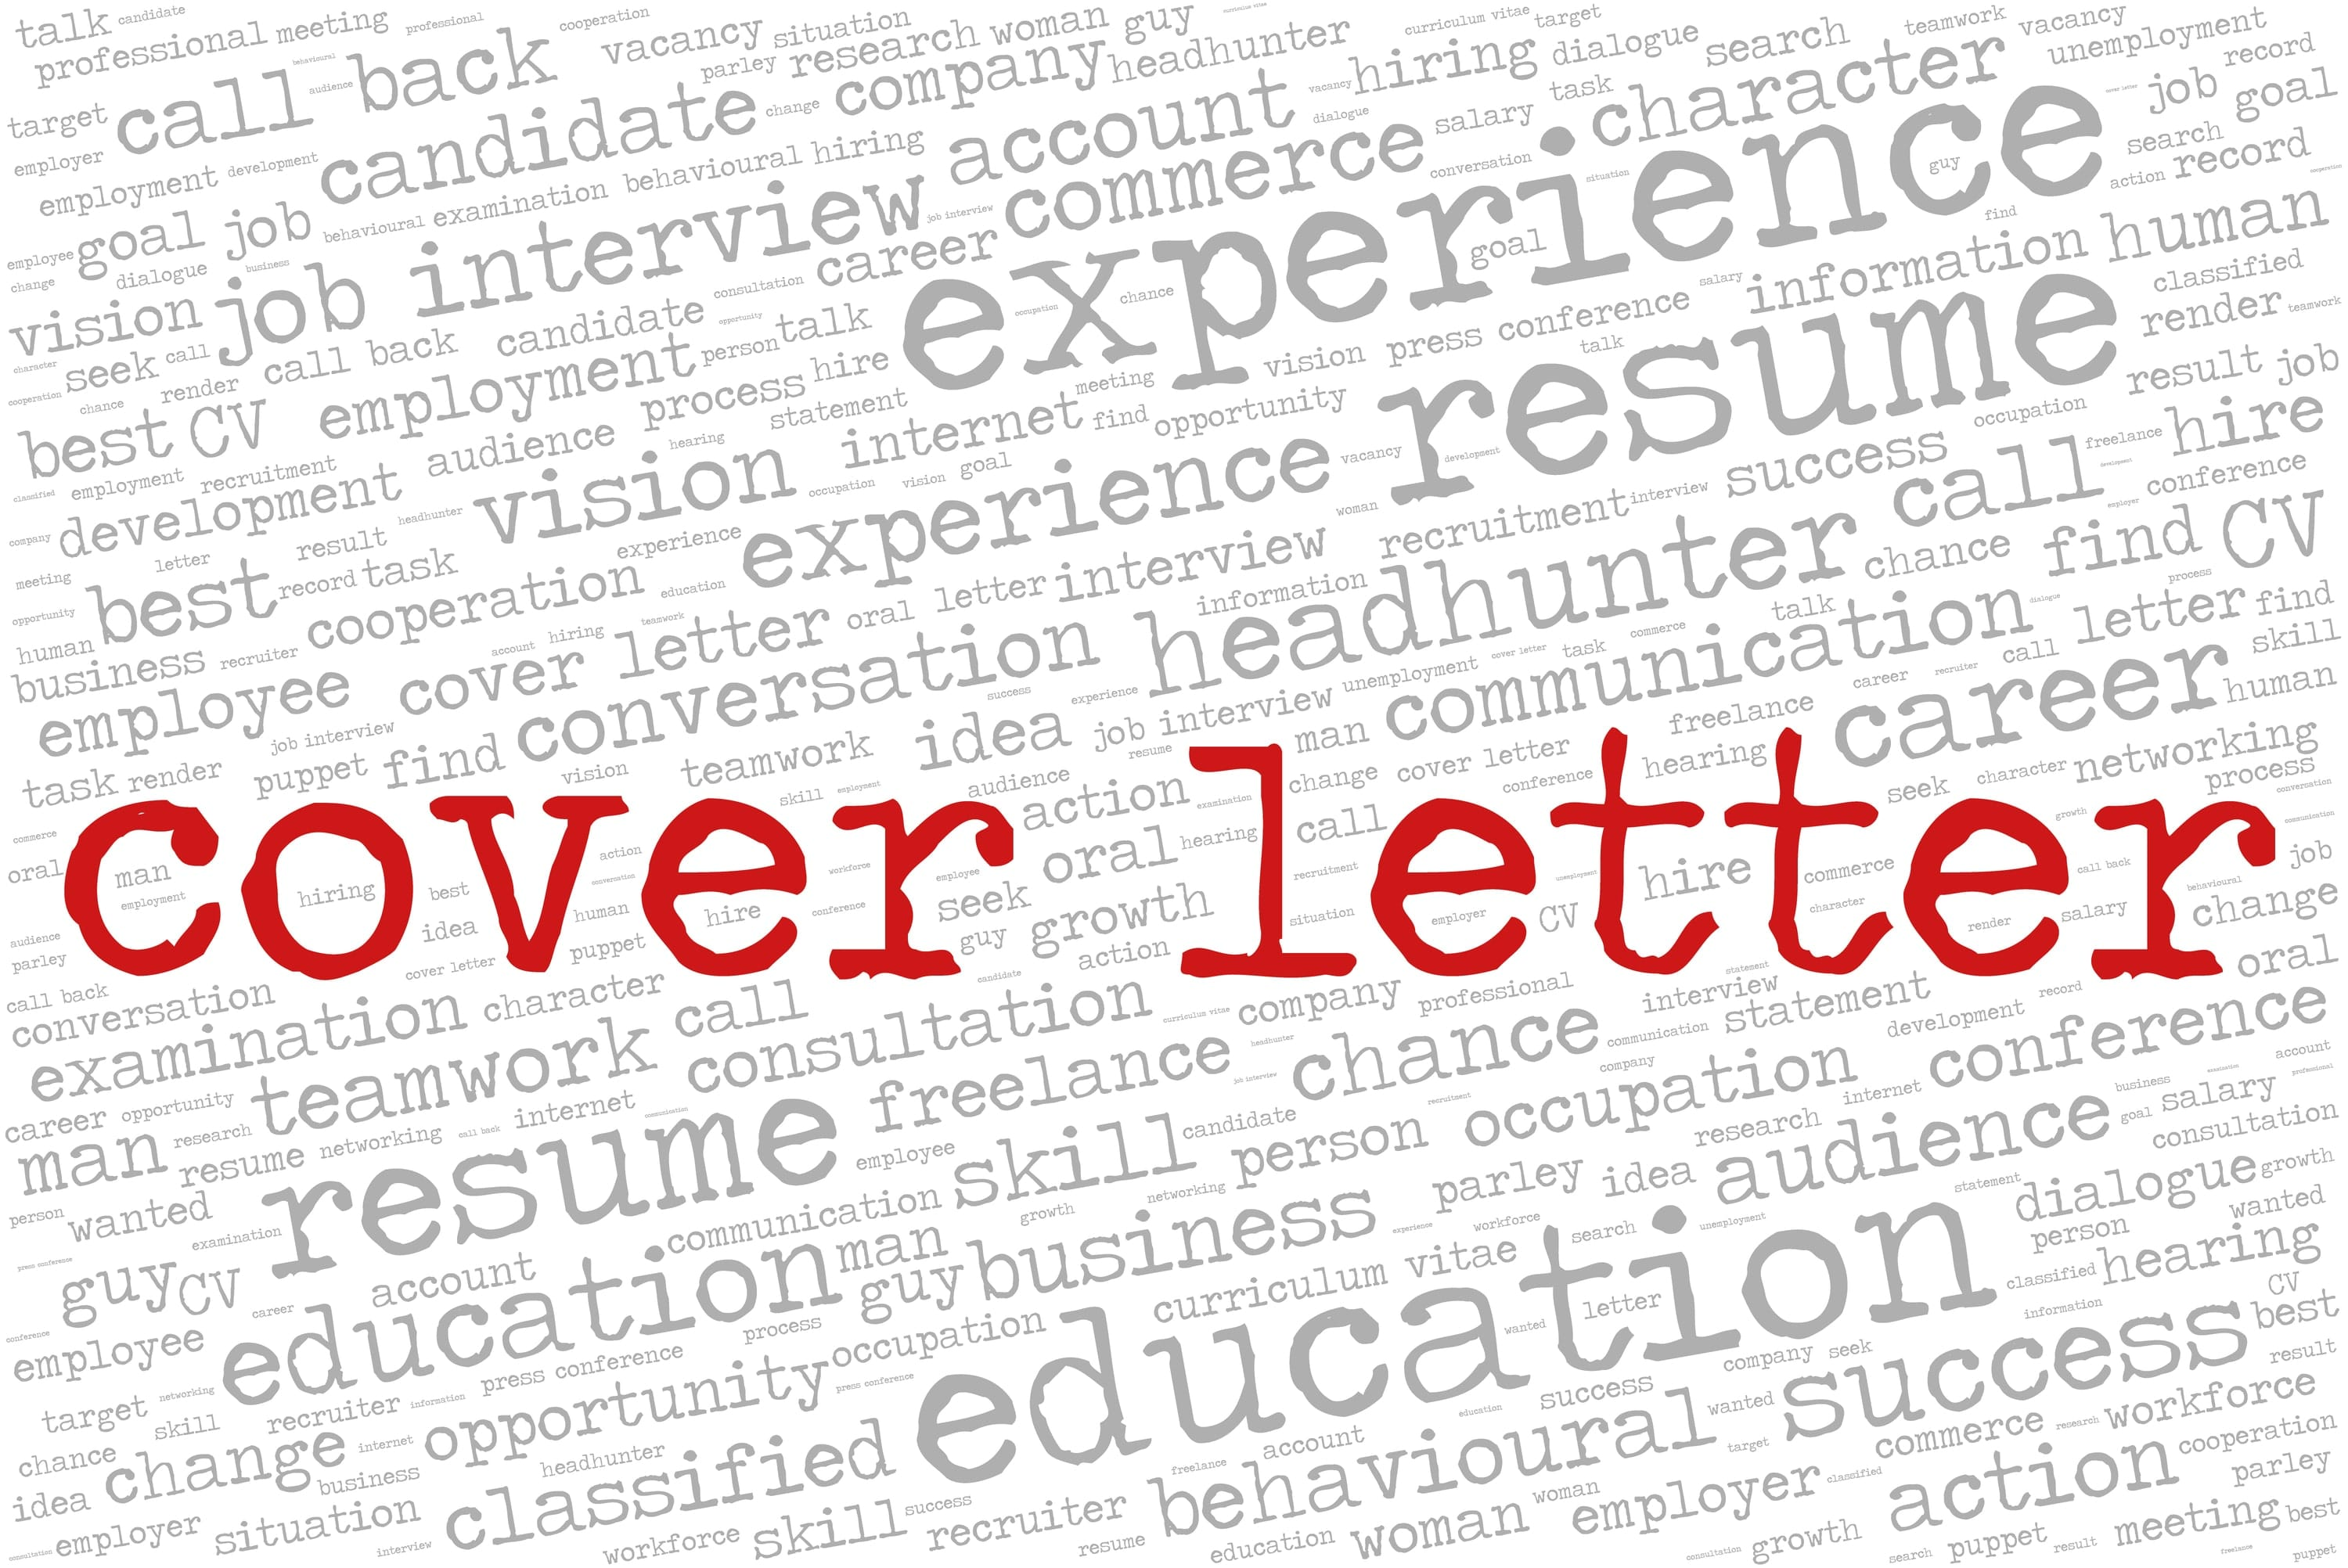 How To Write A Good Cover Letter For A Job Application